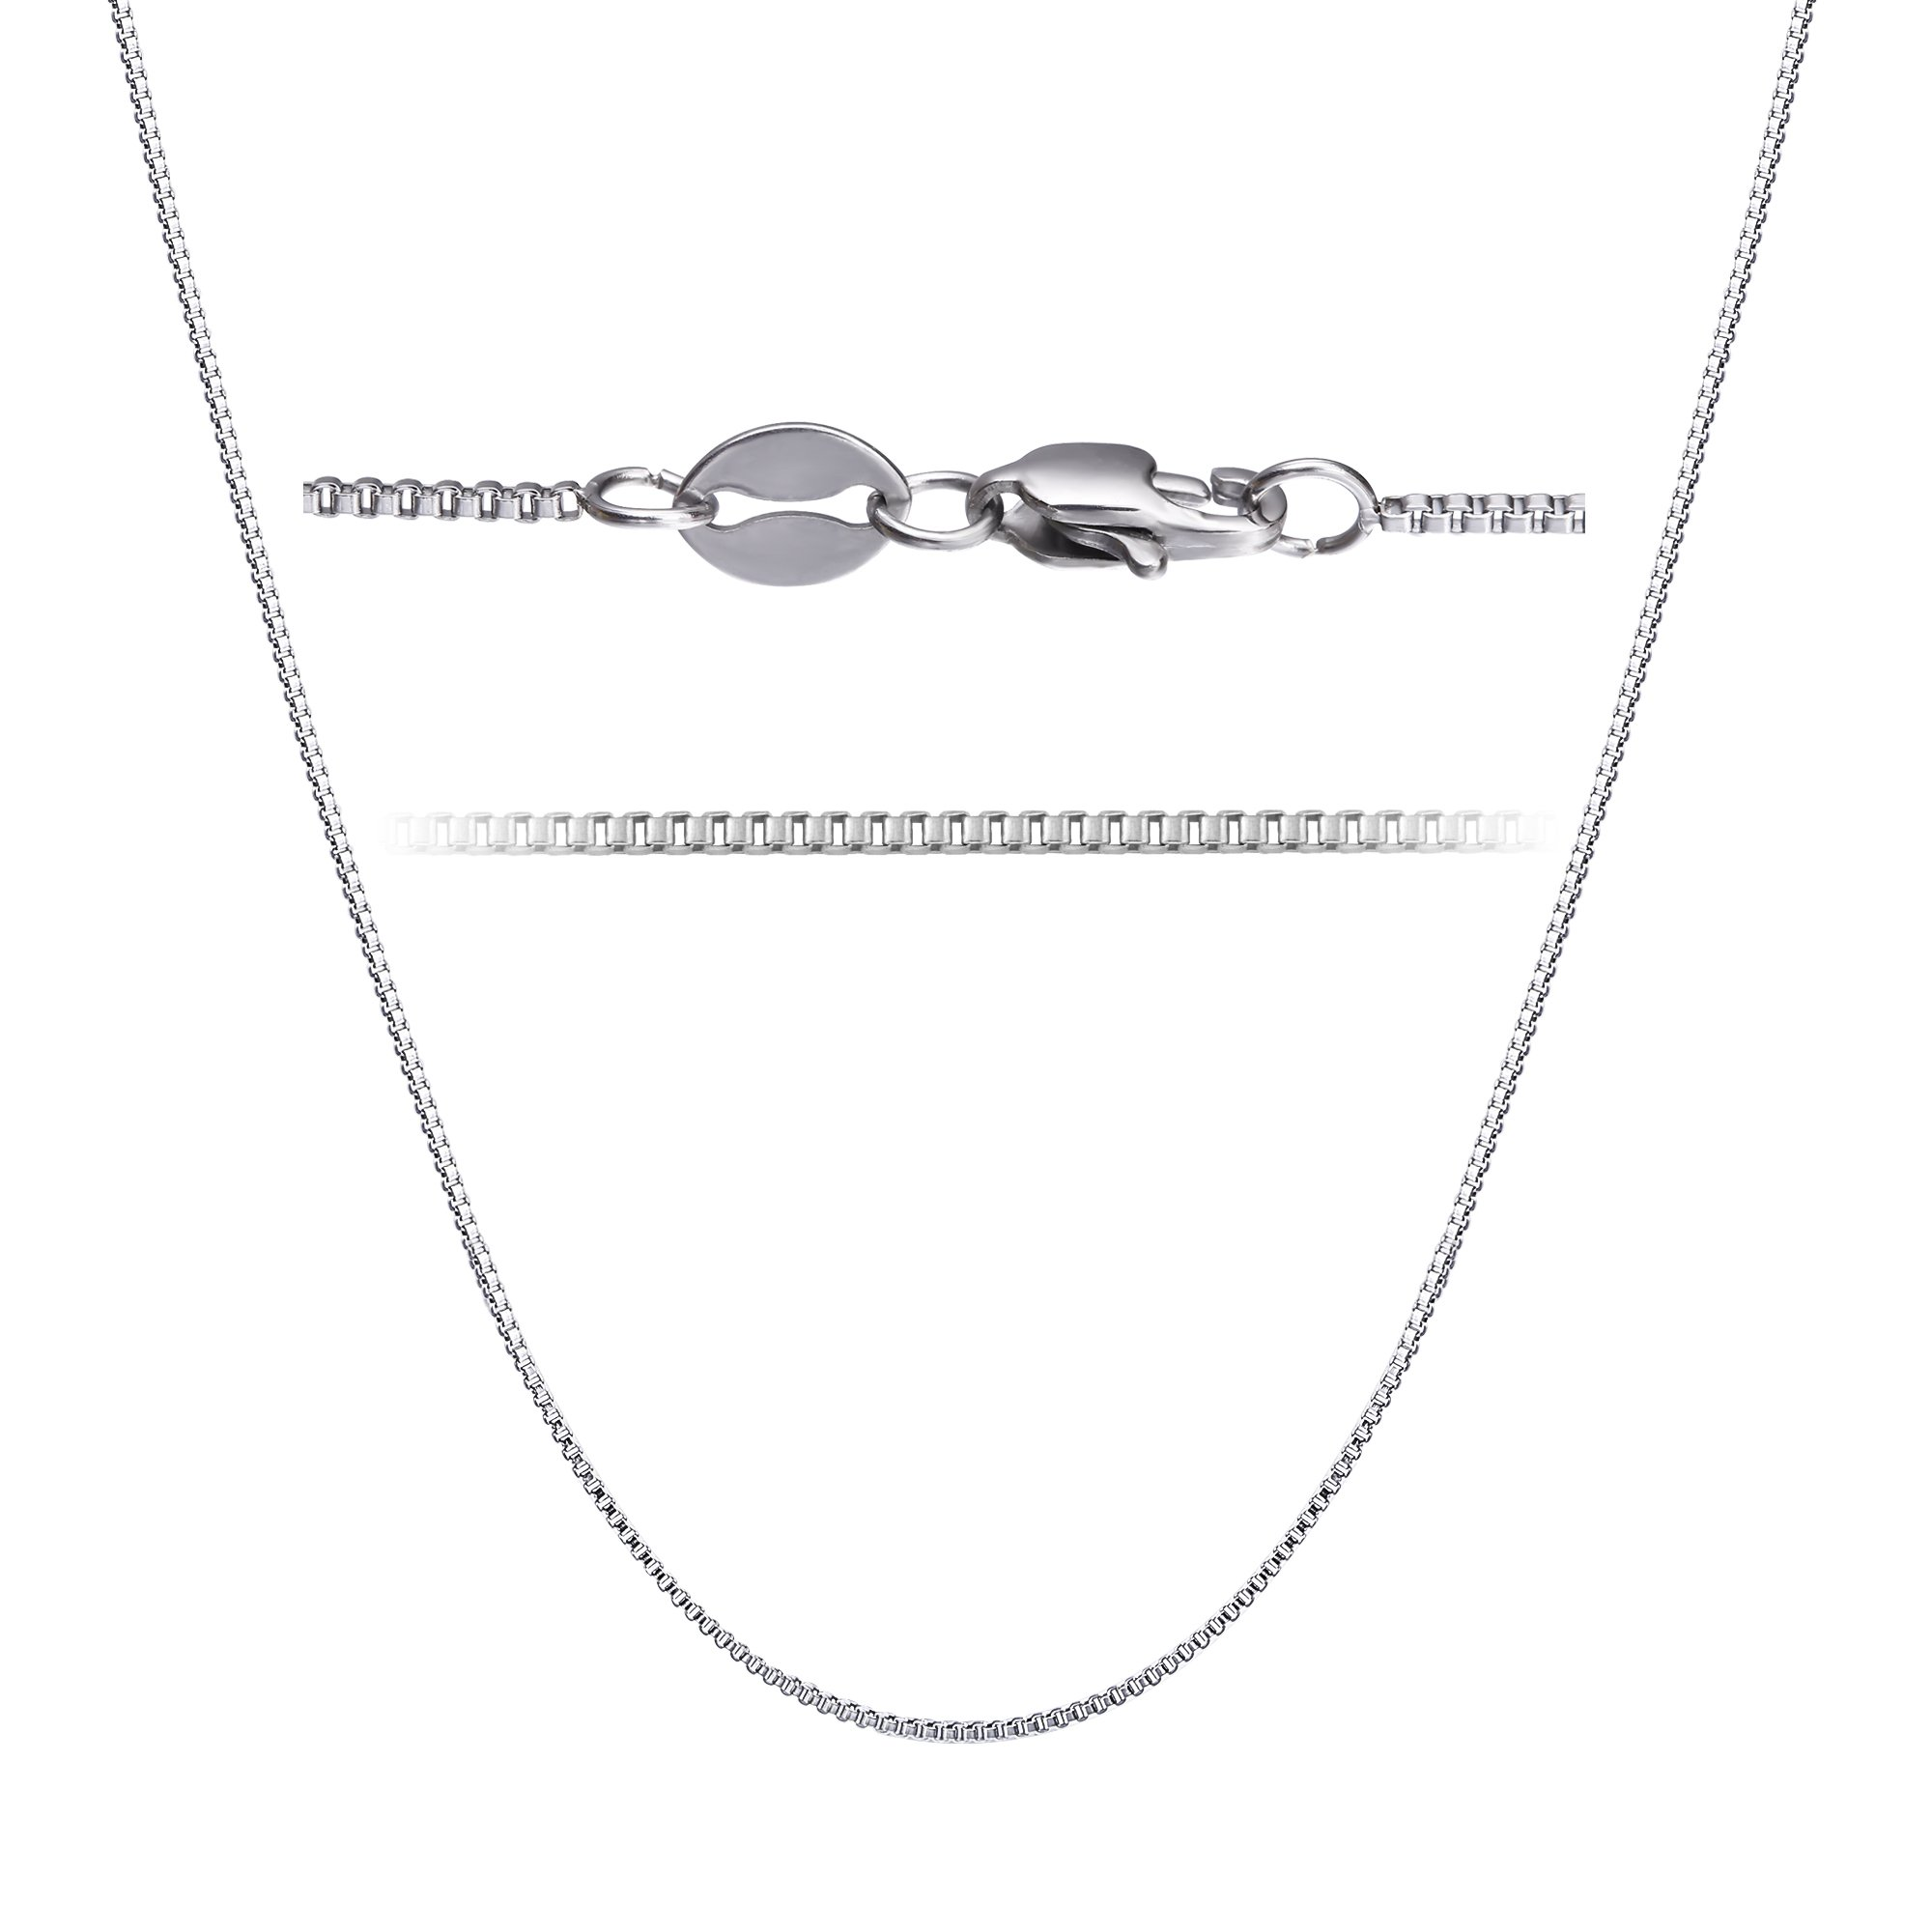 LOLIAS 2 Pcs Stainless Steel 1mm Round Snake Chain Box Chain Necklace Super Thin & Strong,30 Inch by LOLIAS (Image #4)